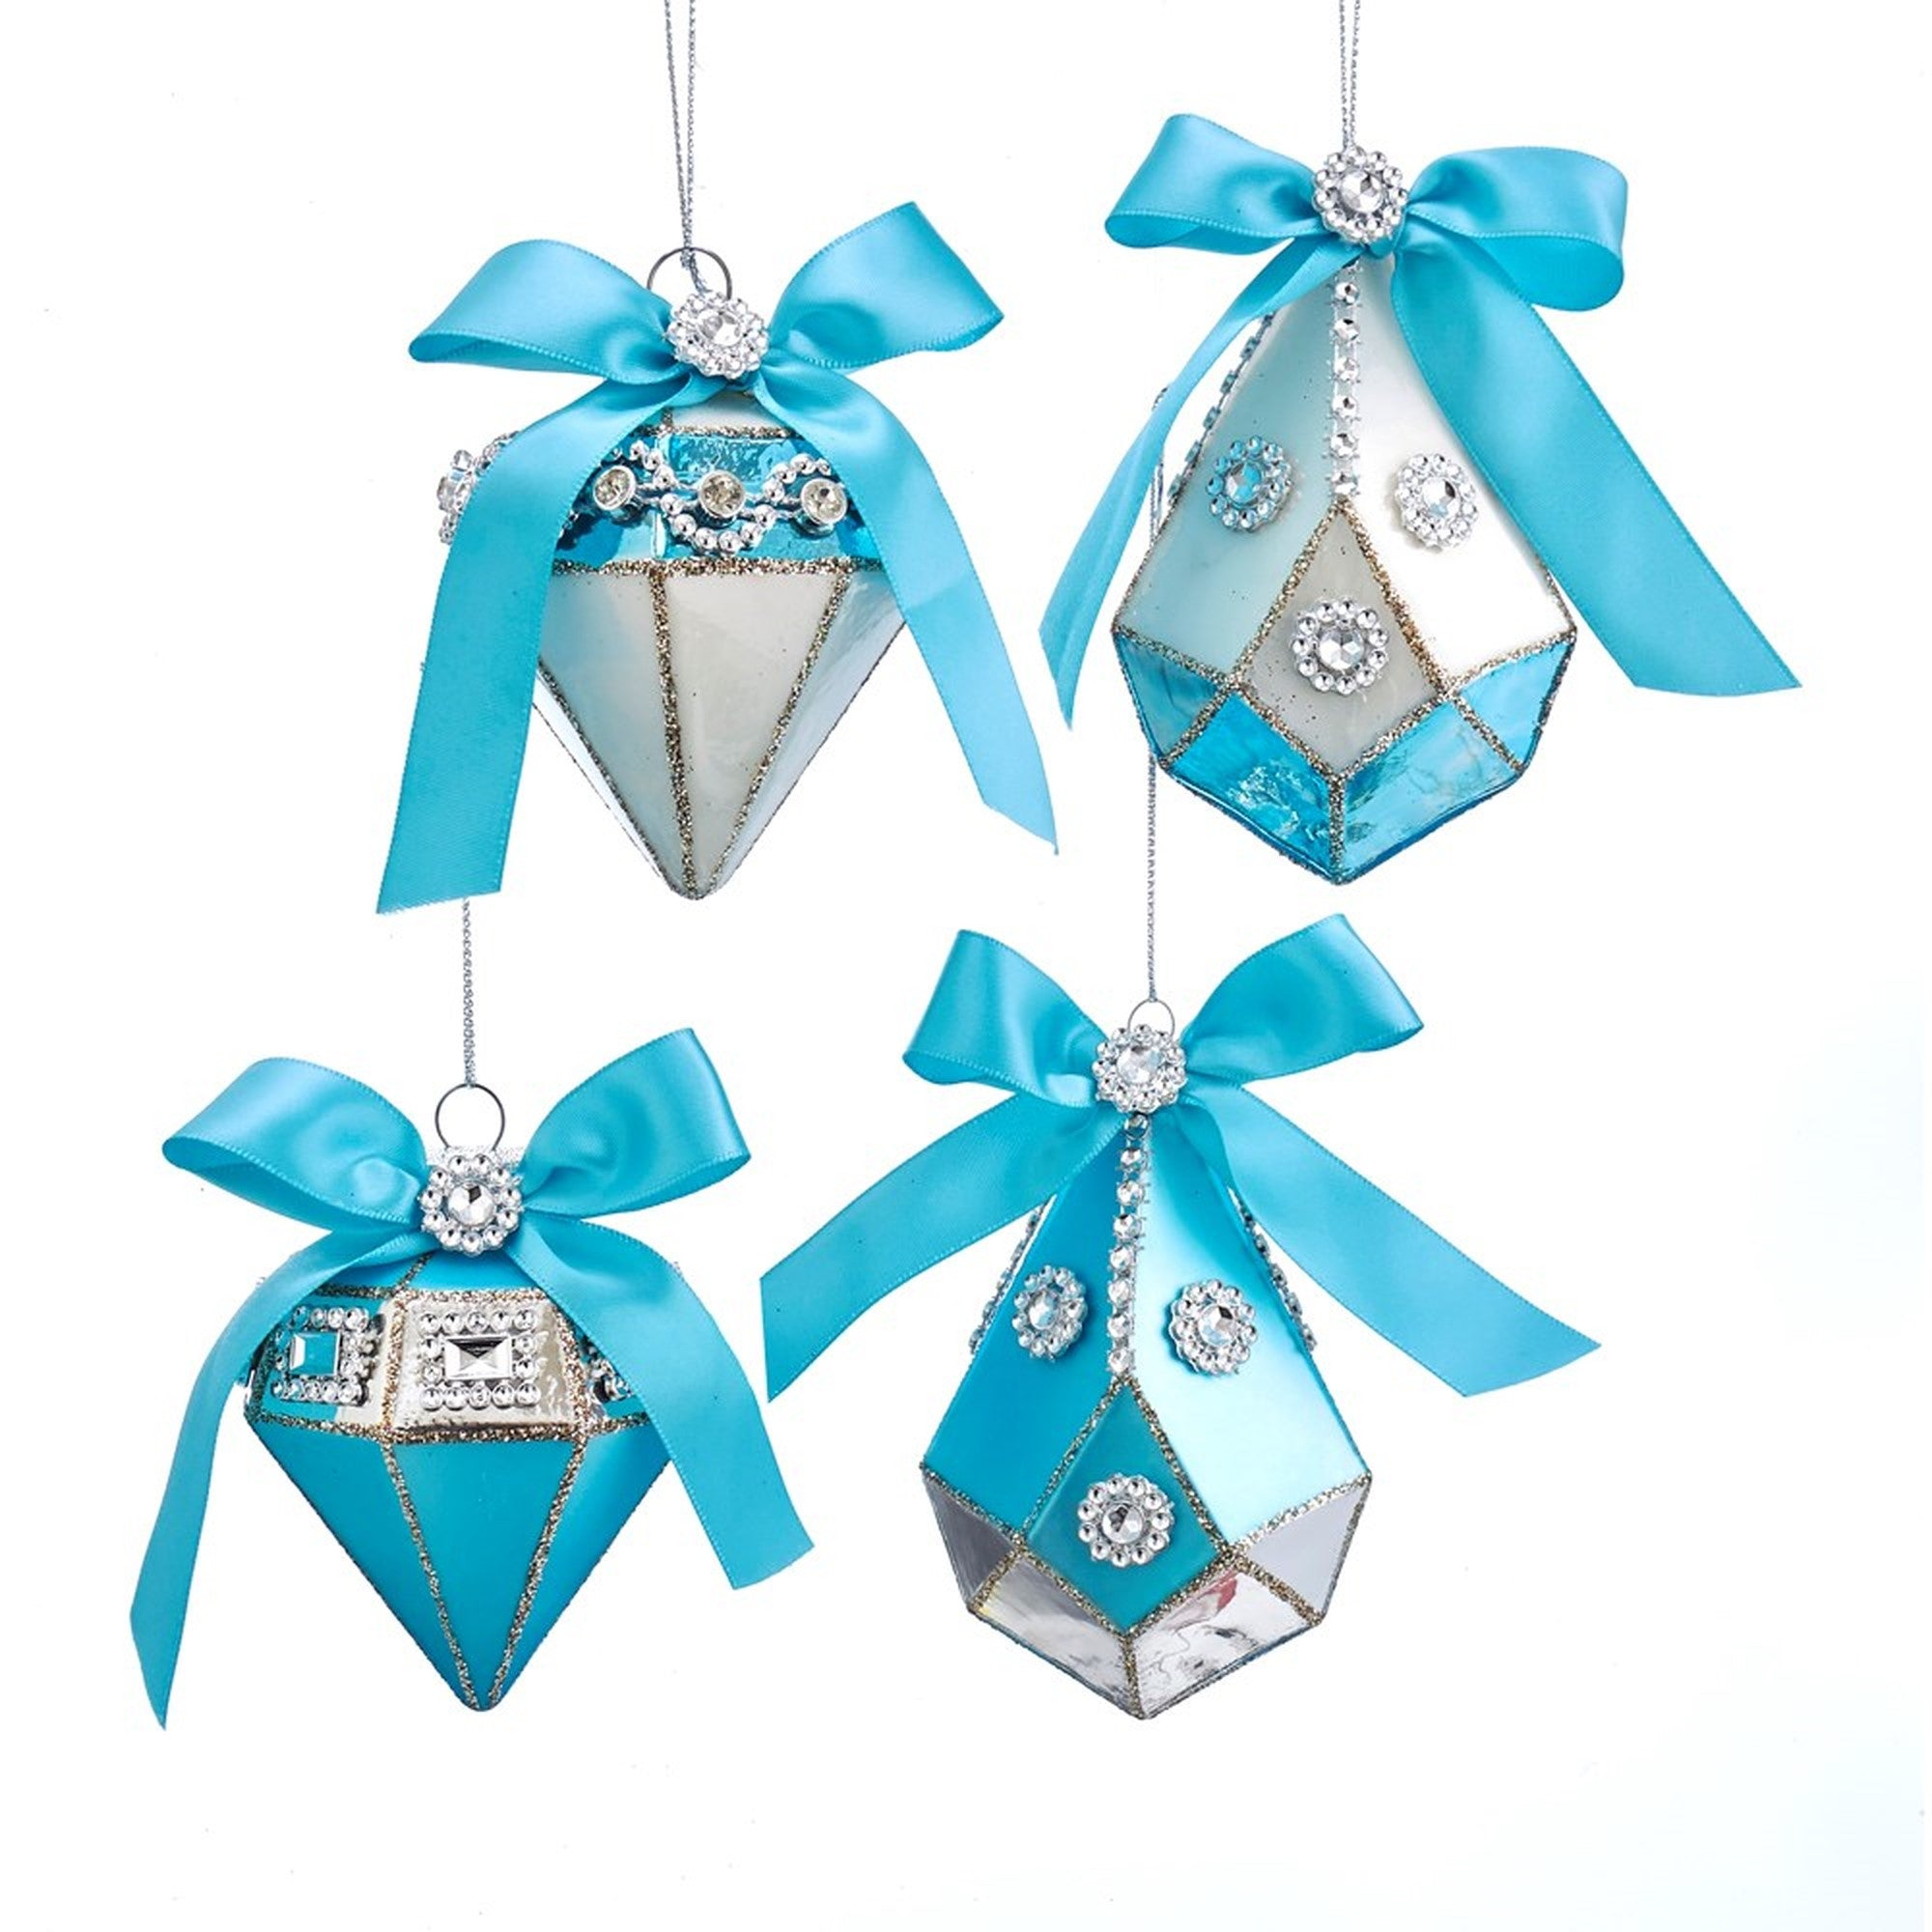 Kurt Adler Tiffany Blue Drop Ornaments with Bow | Putti Christmas